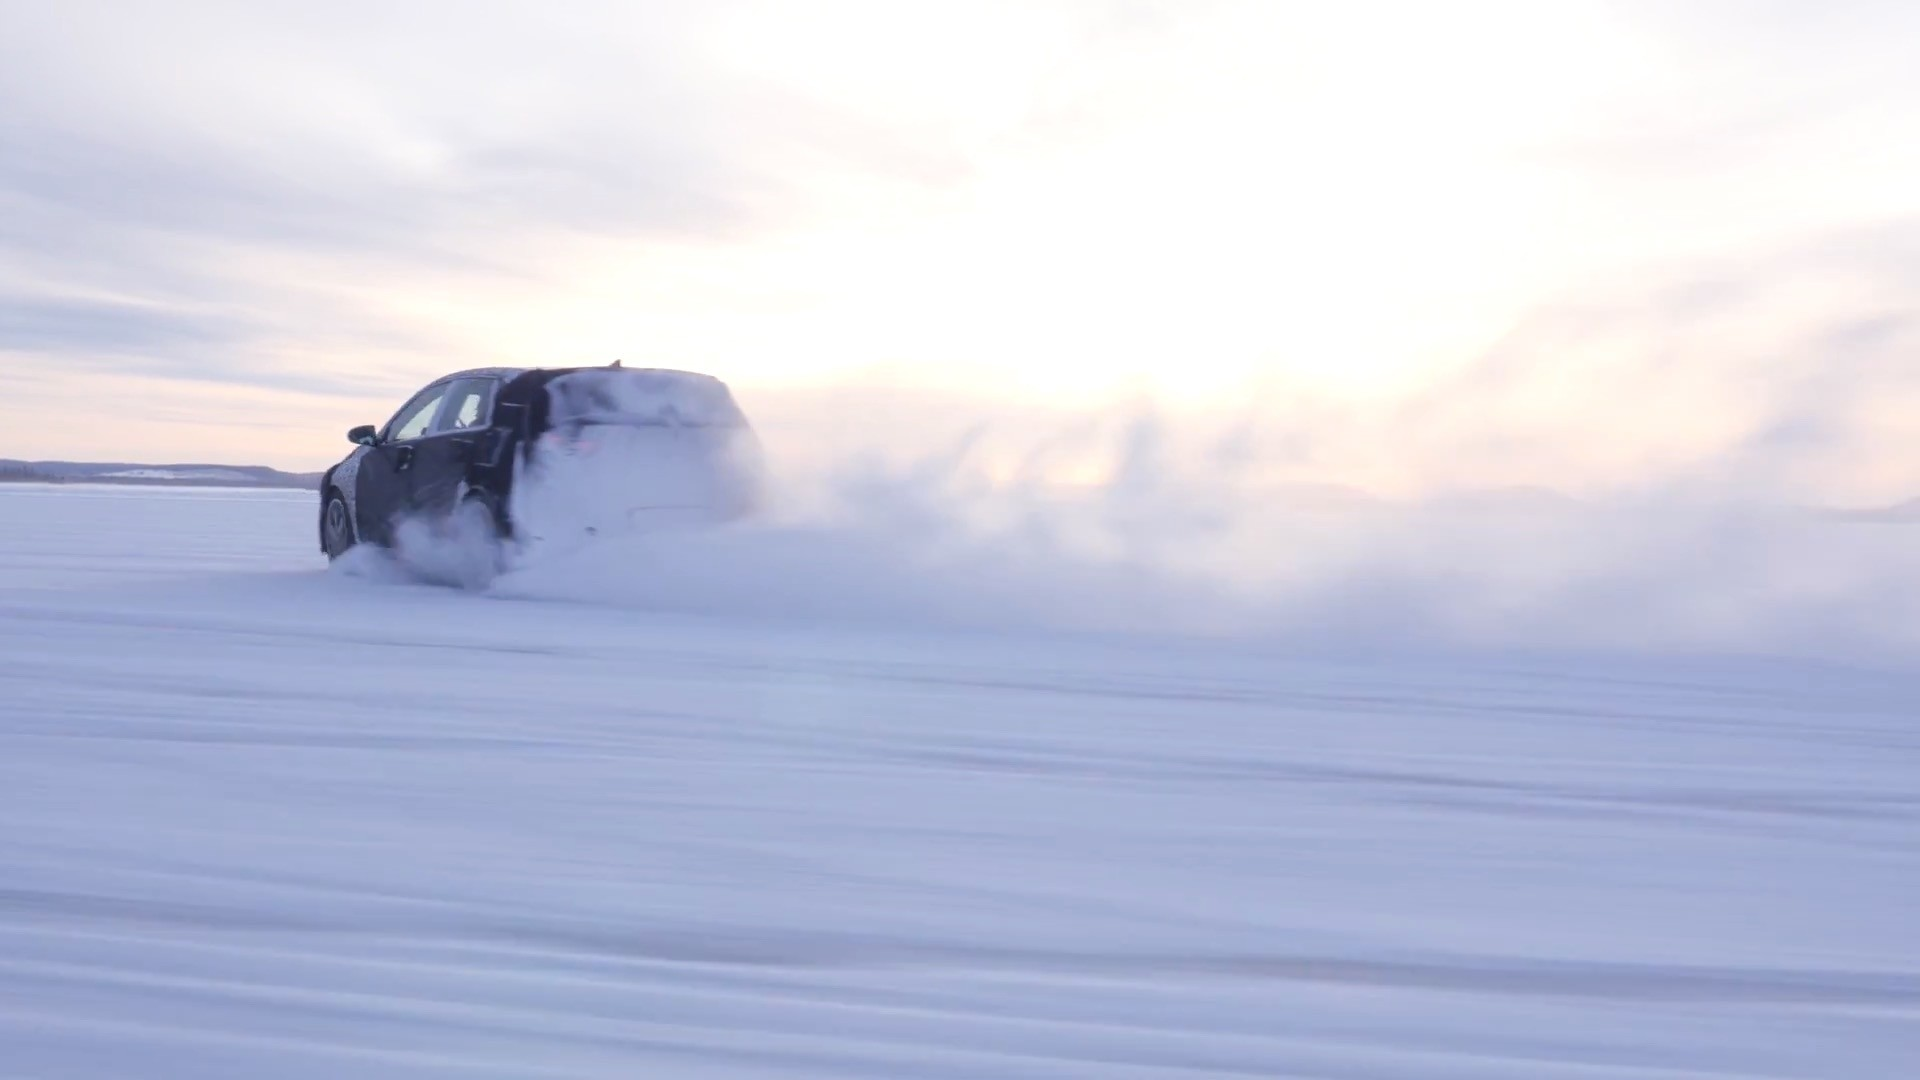 hyundai-puts-the-i30-n-hot-hatchback-to-the-test-in-arctic-weather_37.jpg